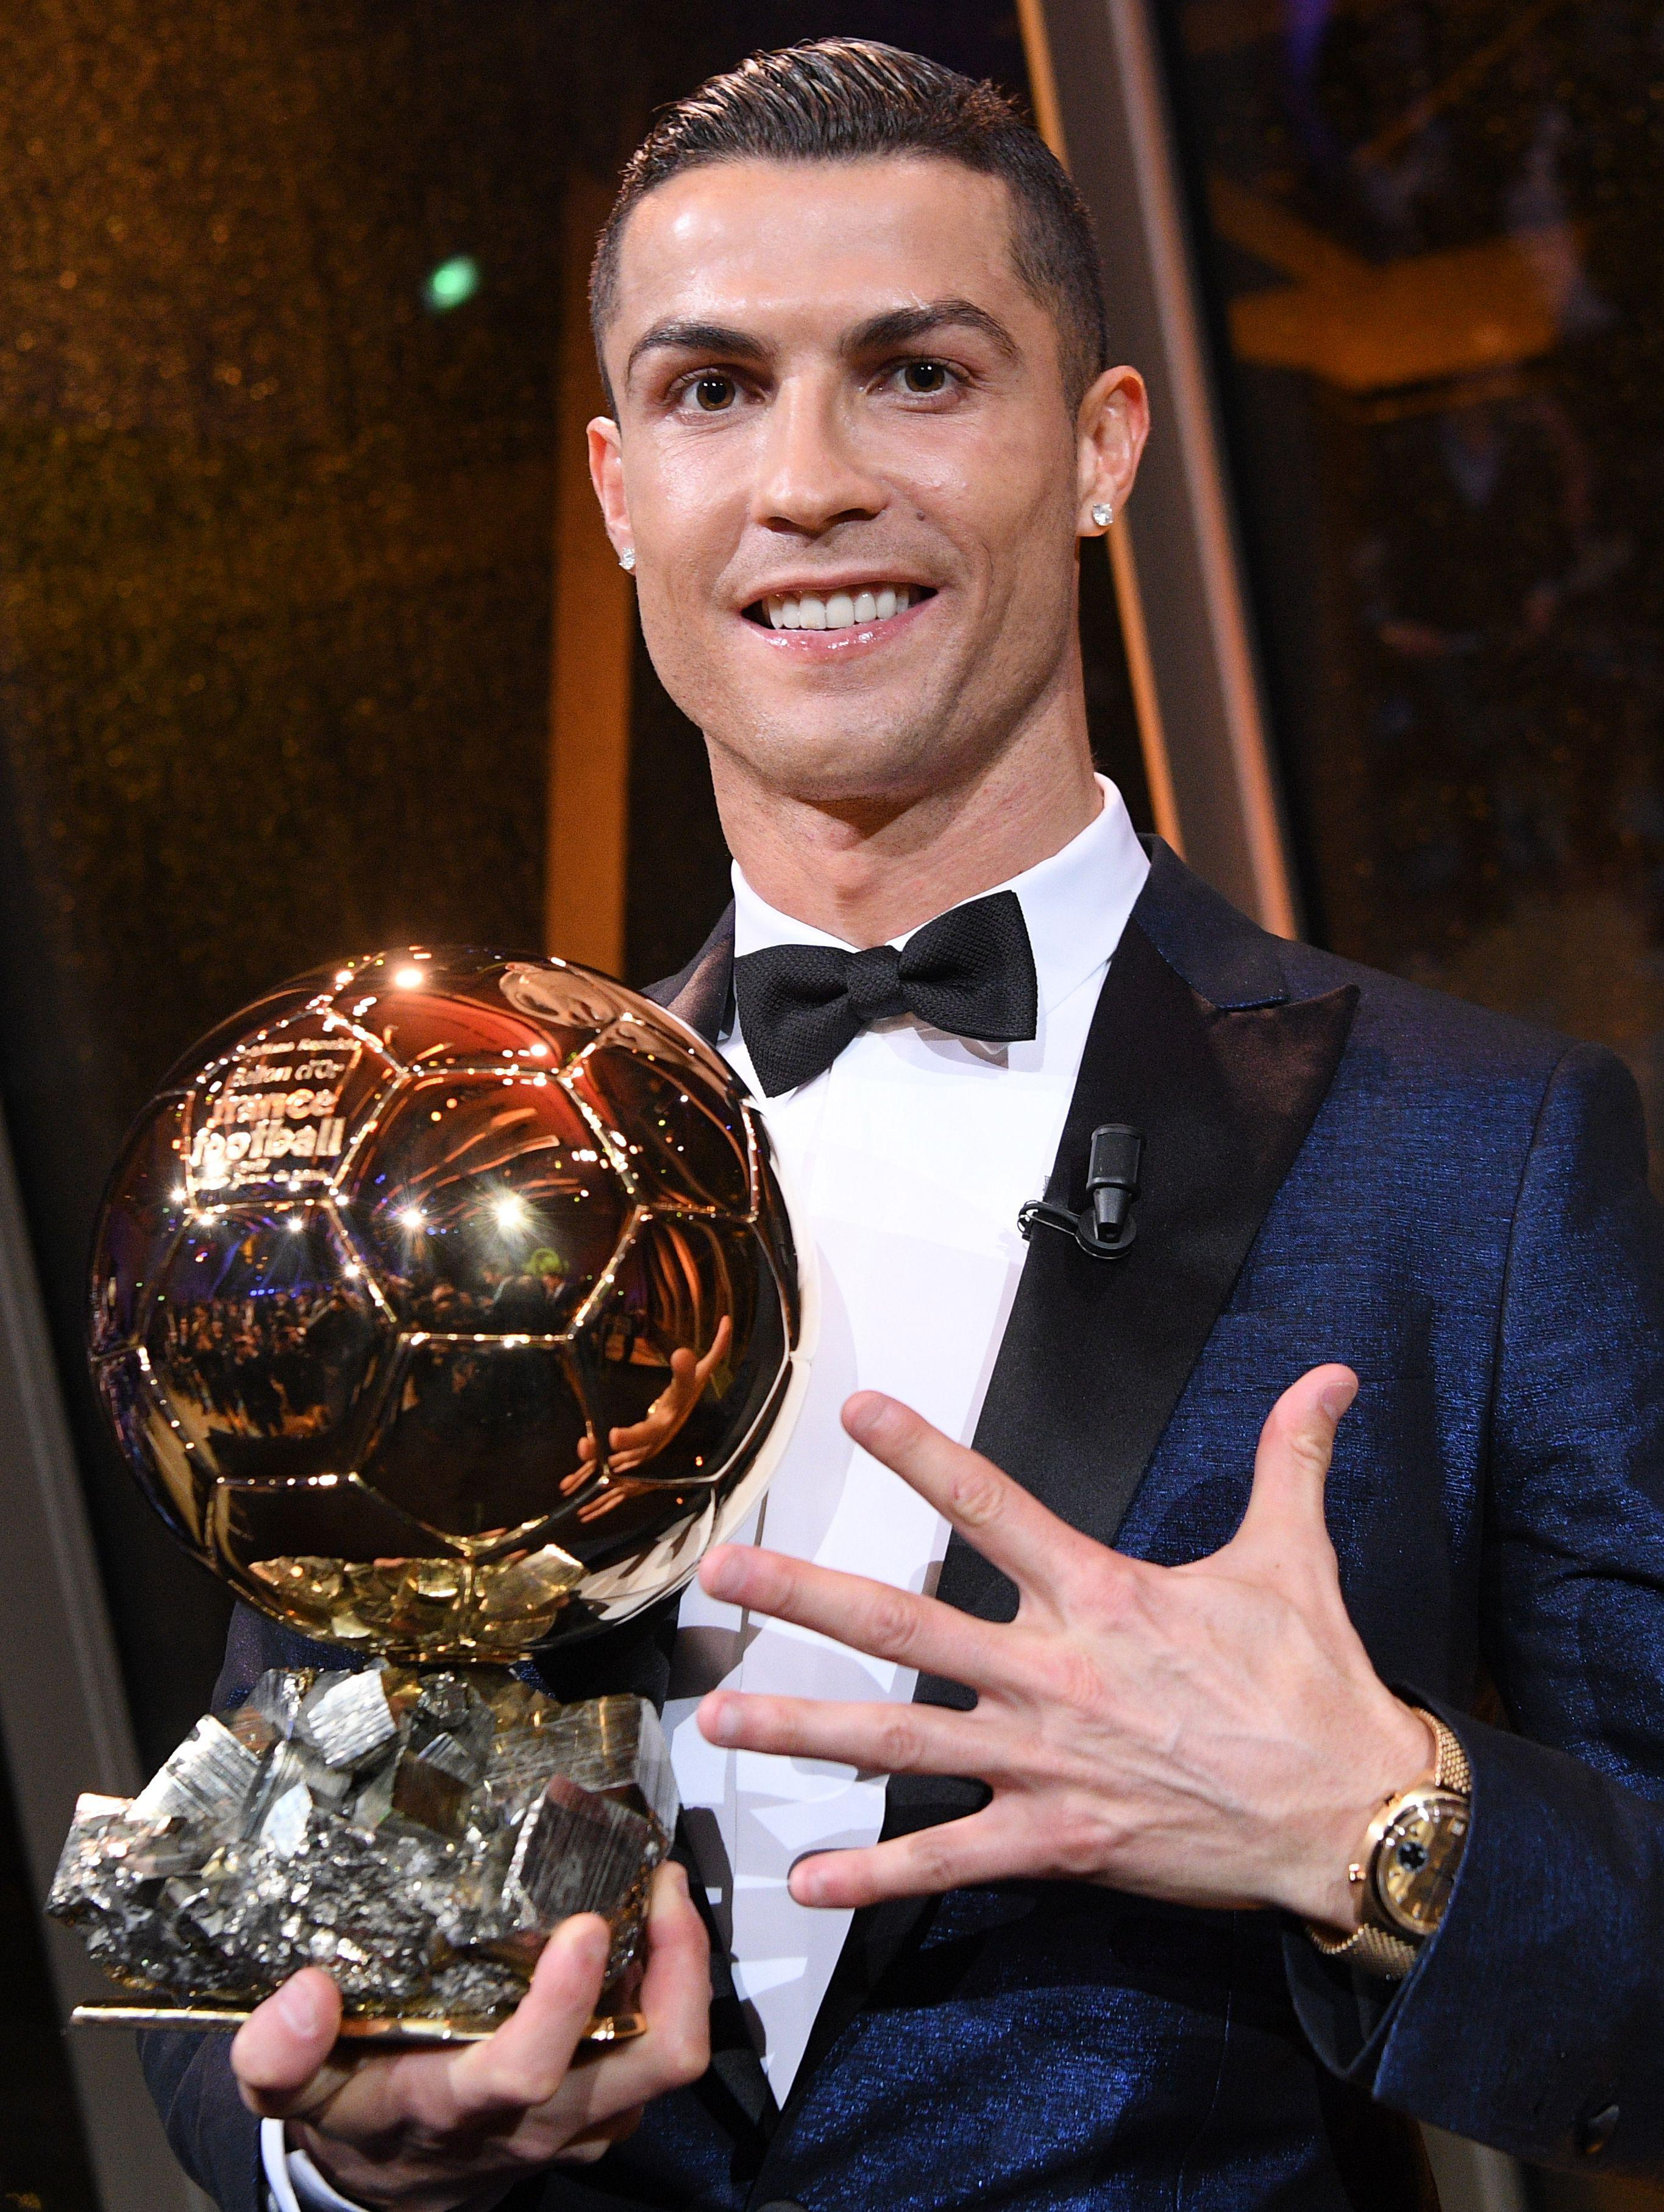 Five Ballon d'Ors should speak for themselves